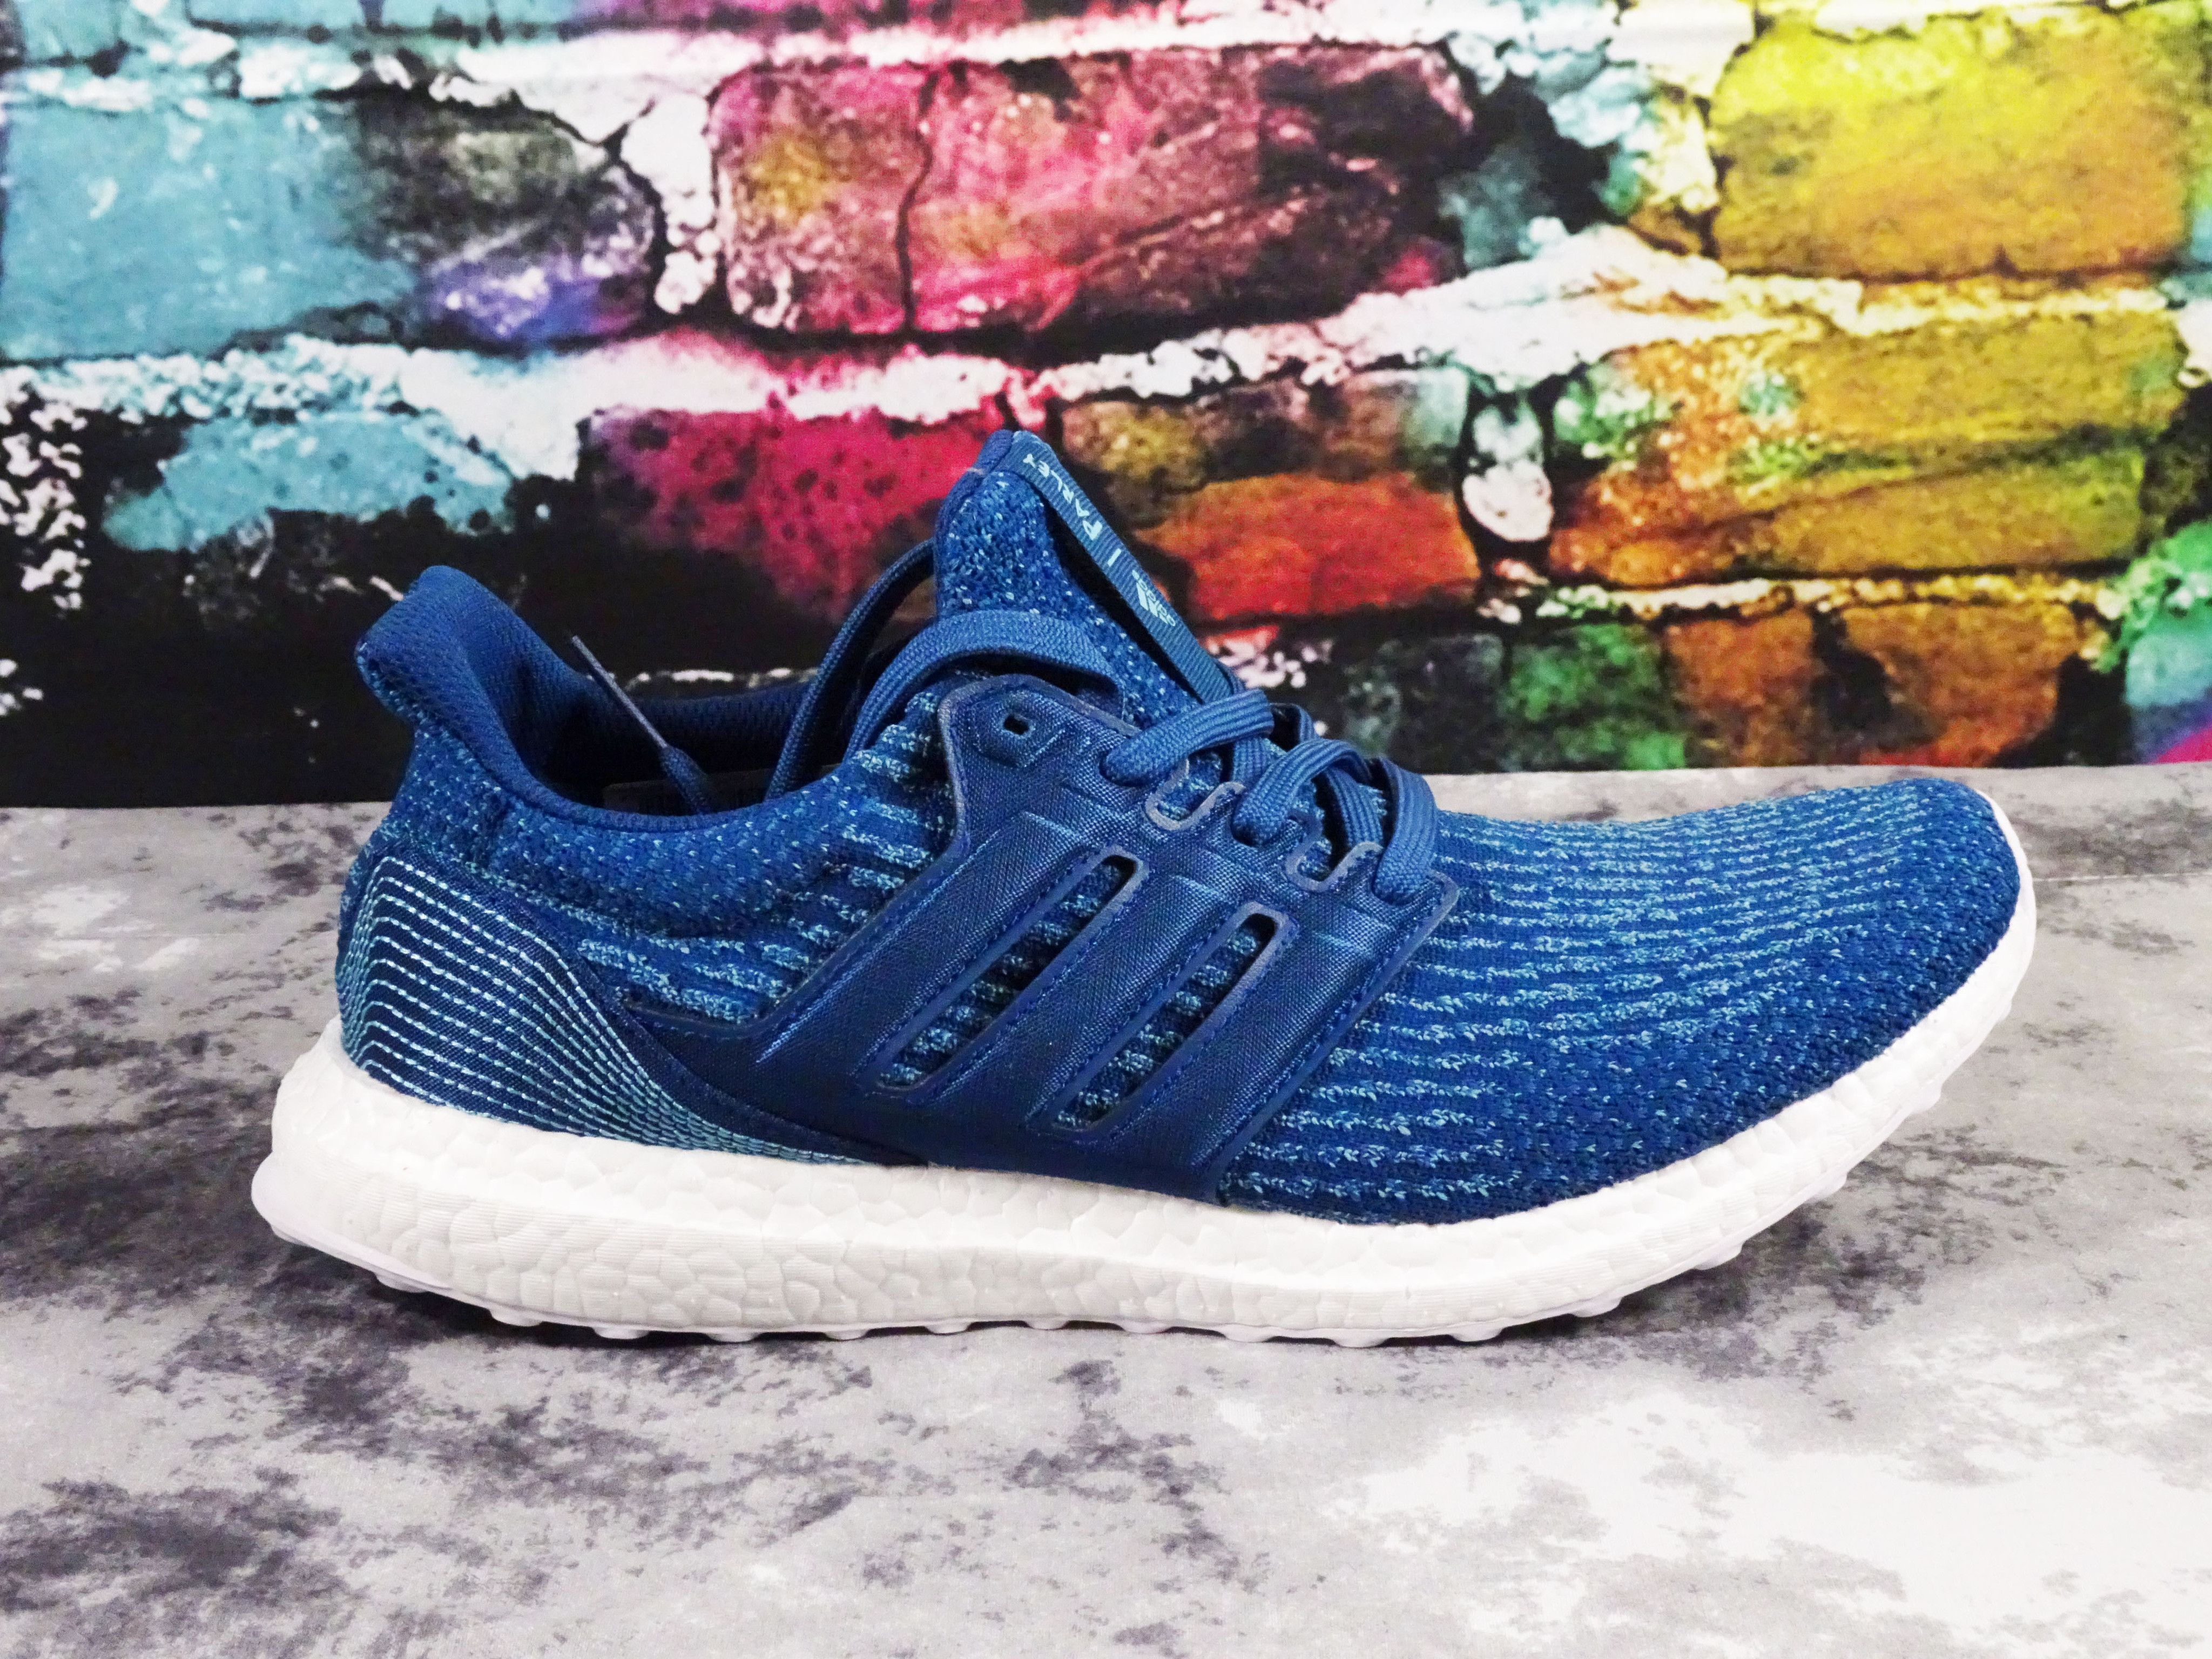 65803aac358dc Adidas Ultra Boost Parley Night Navy